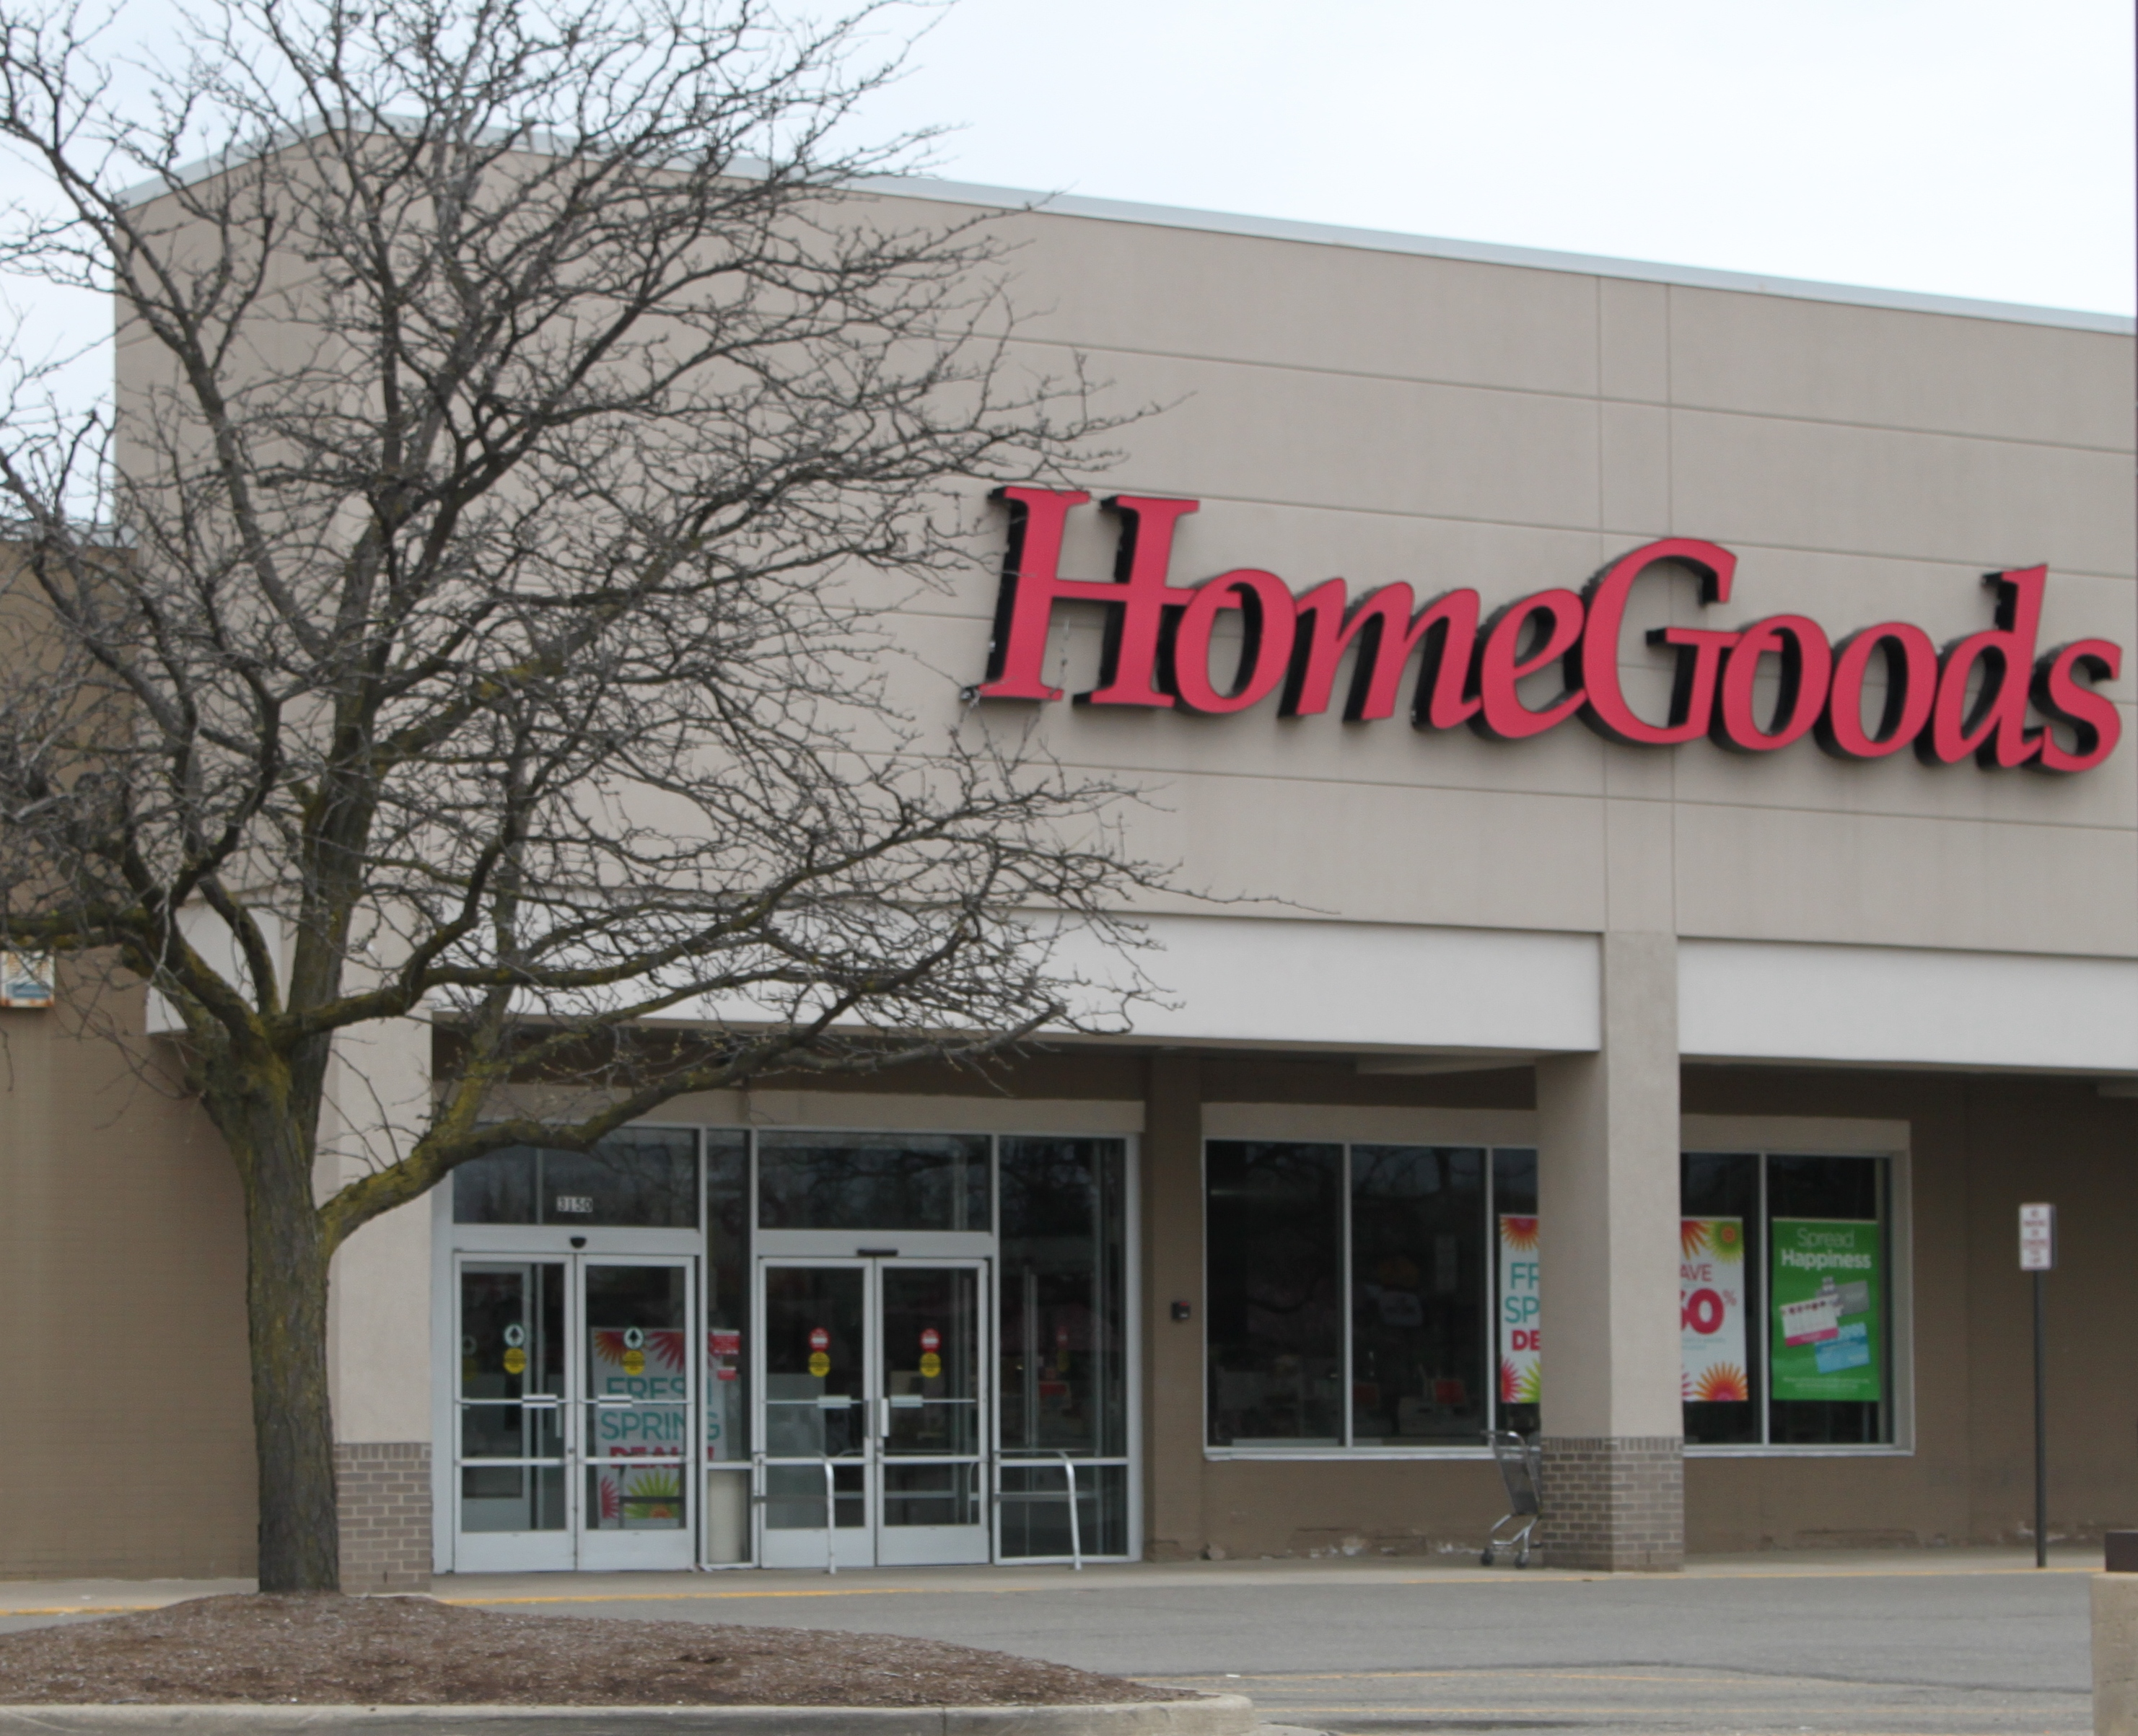 homegoods store in ypsilanti michigan